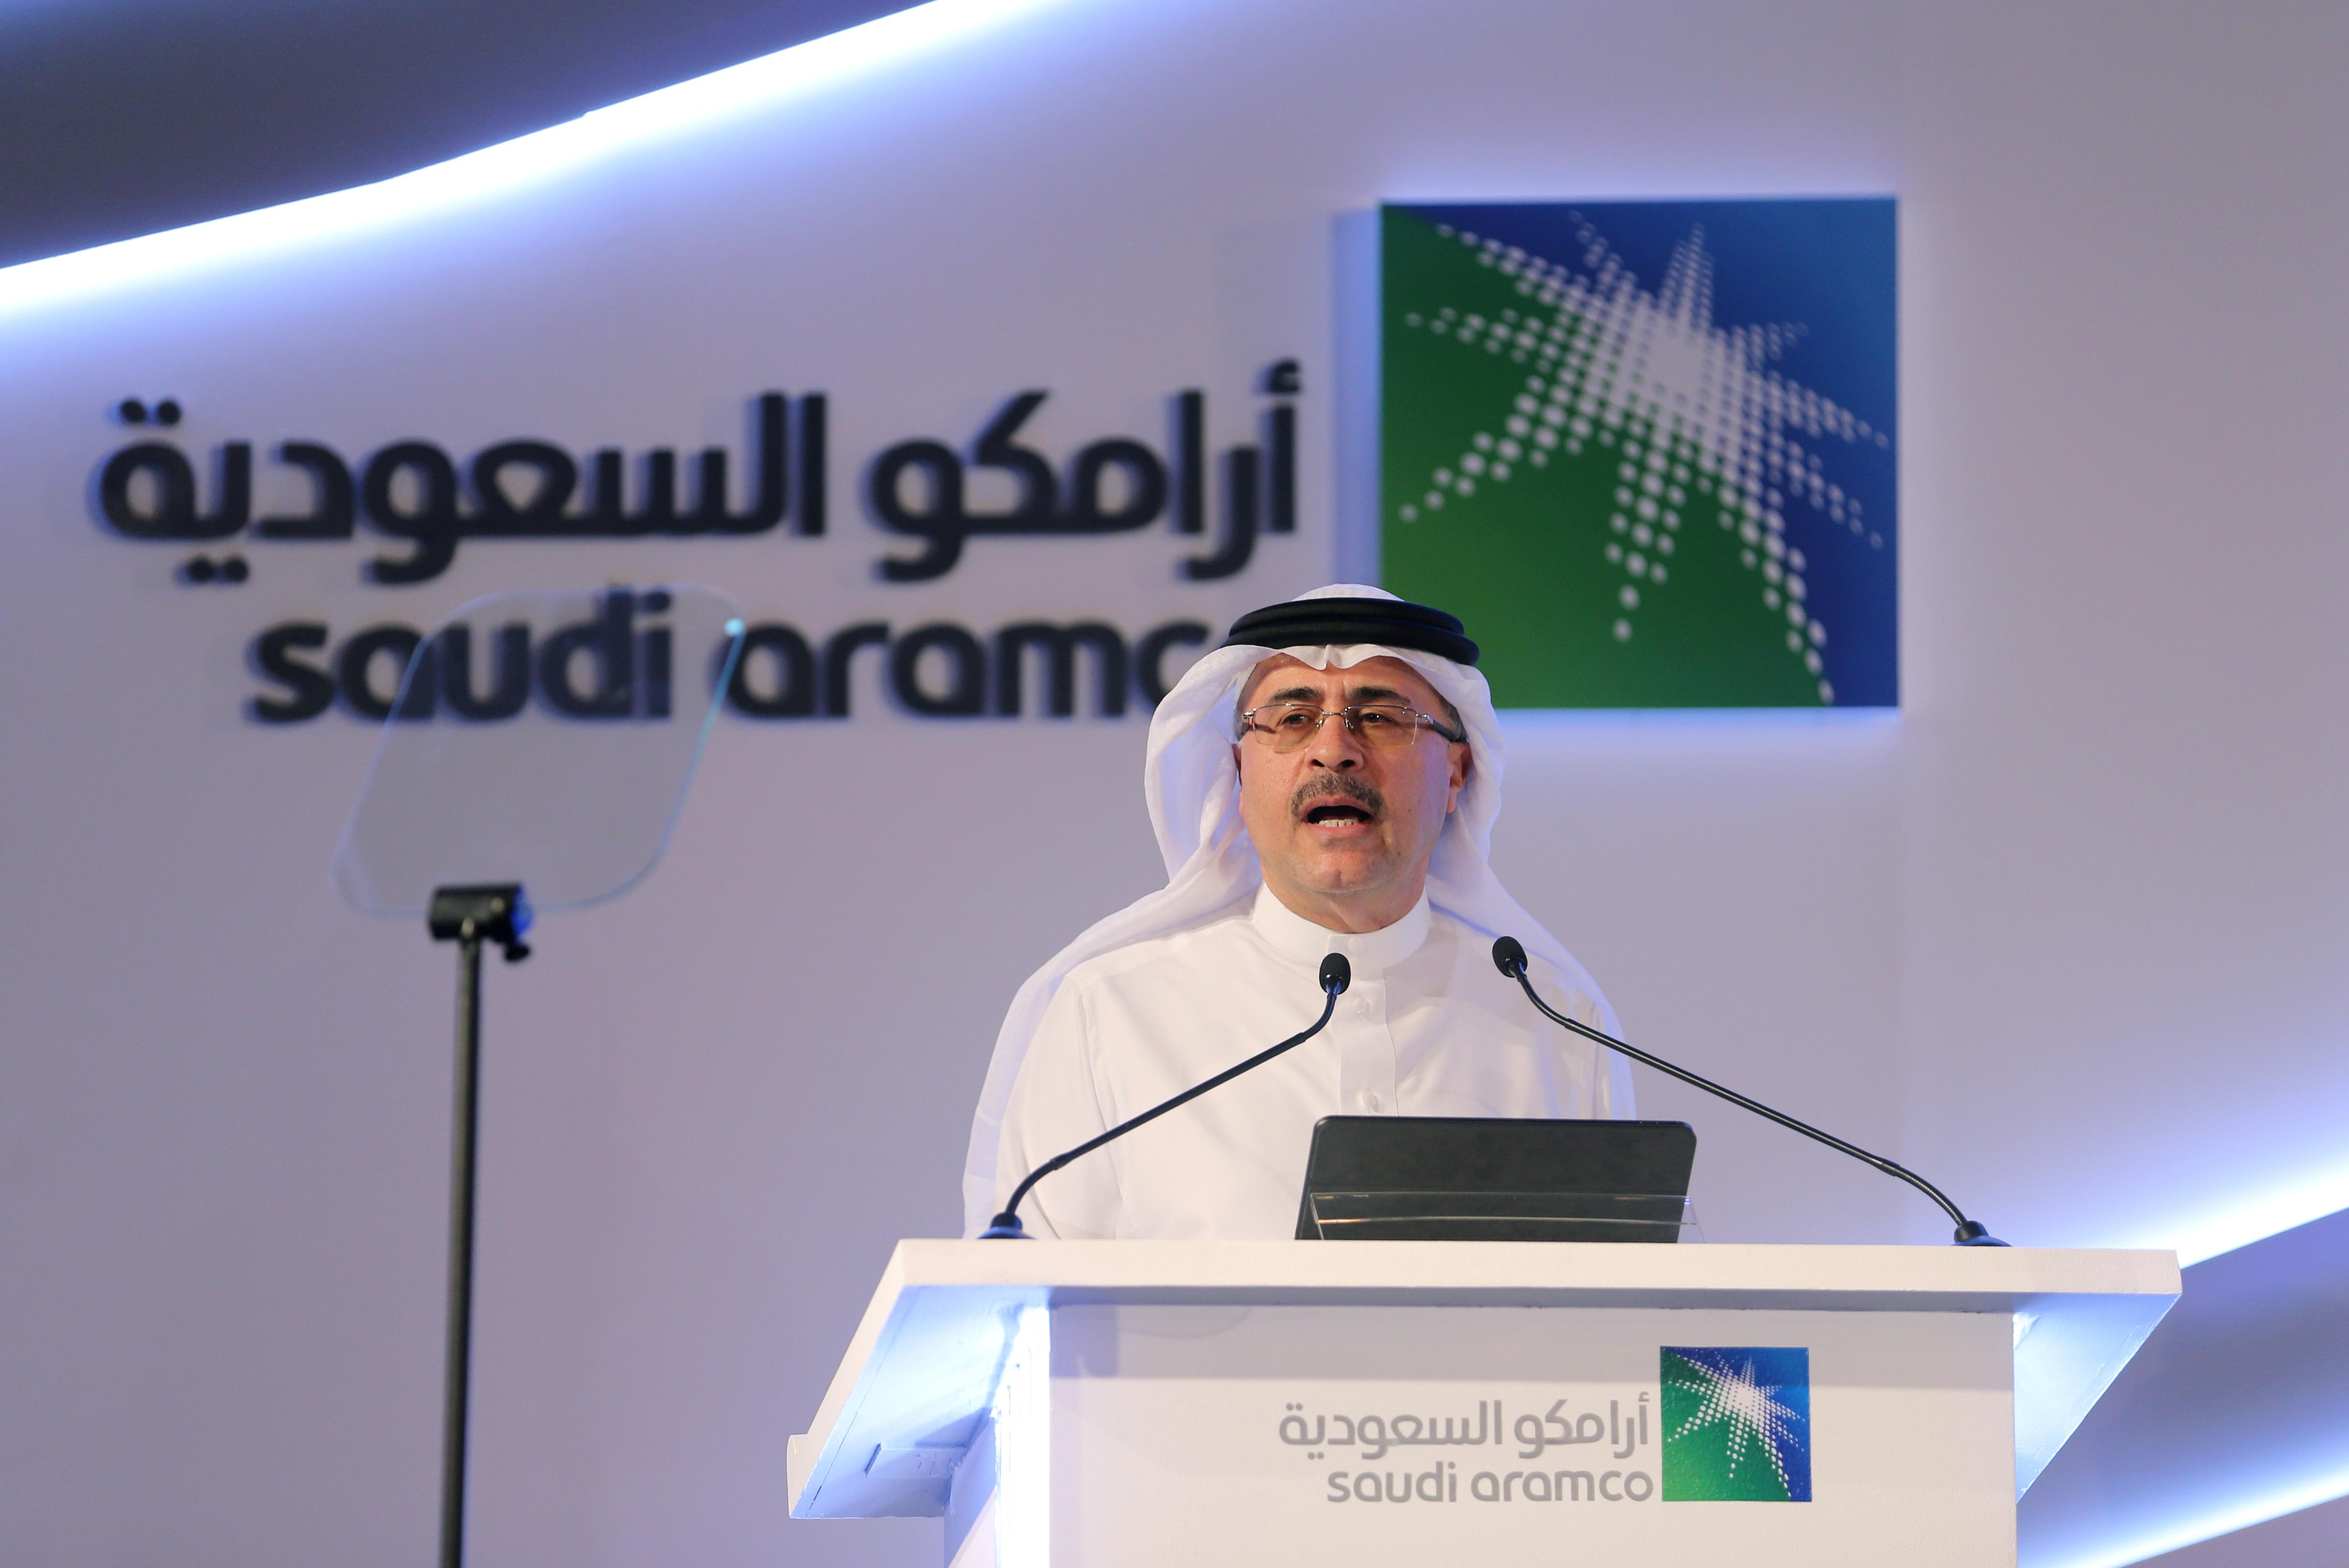 Saudi Aramco CEO: World's oil consumption will not decrease by 2040